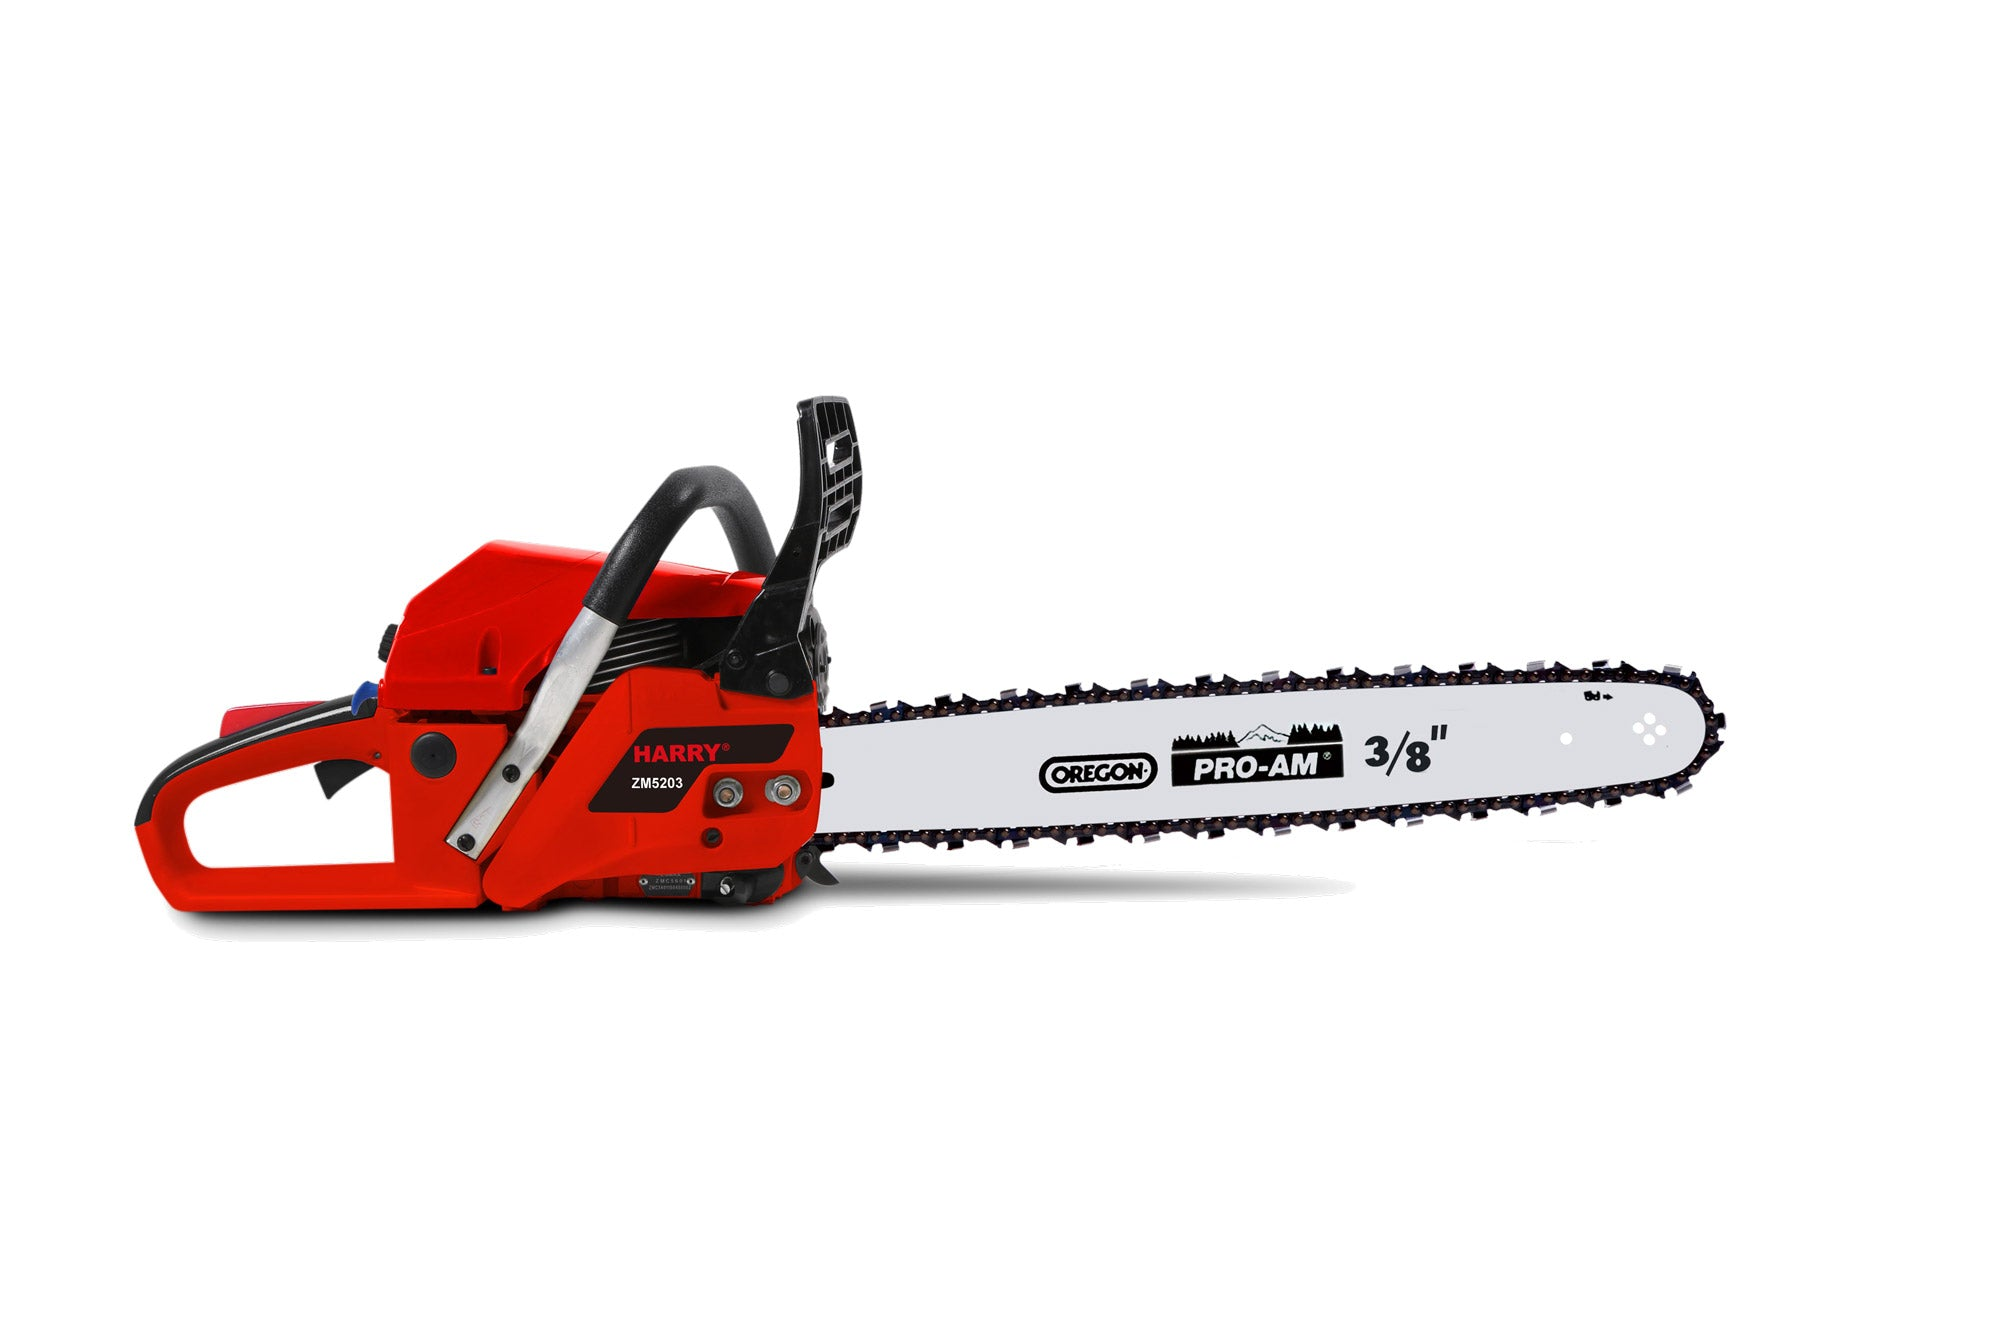 "Harry chainsaw 20"" bar"